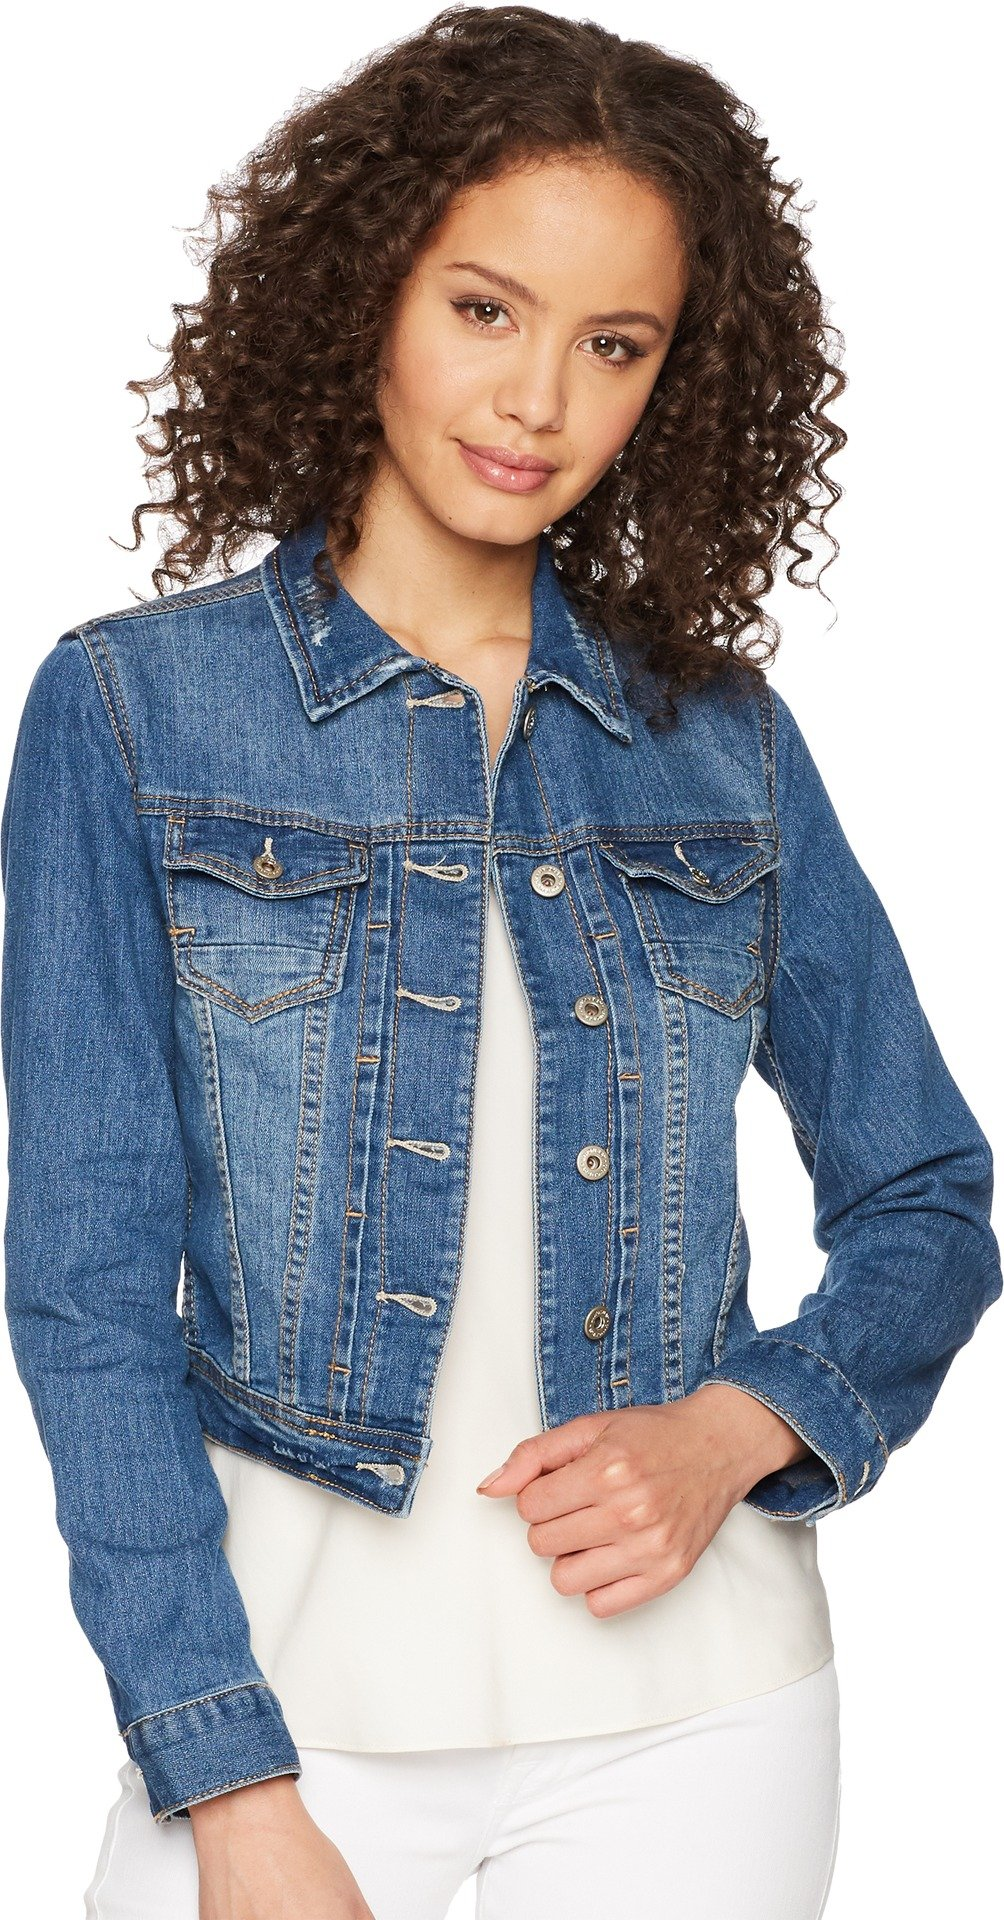 UNIONBAY Women's Lucas Denim Jacket, Cove, Medium by UNIONBAY (Image #1)